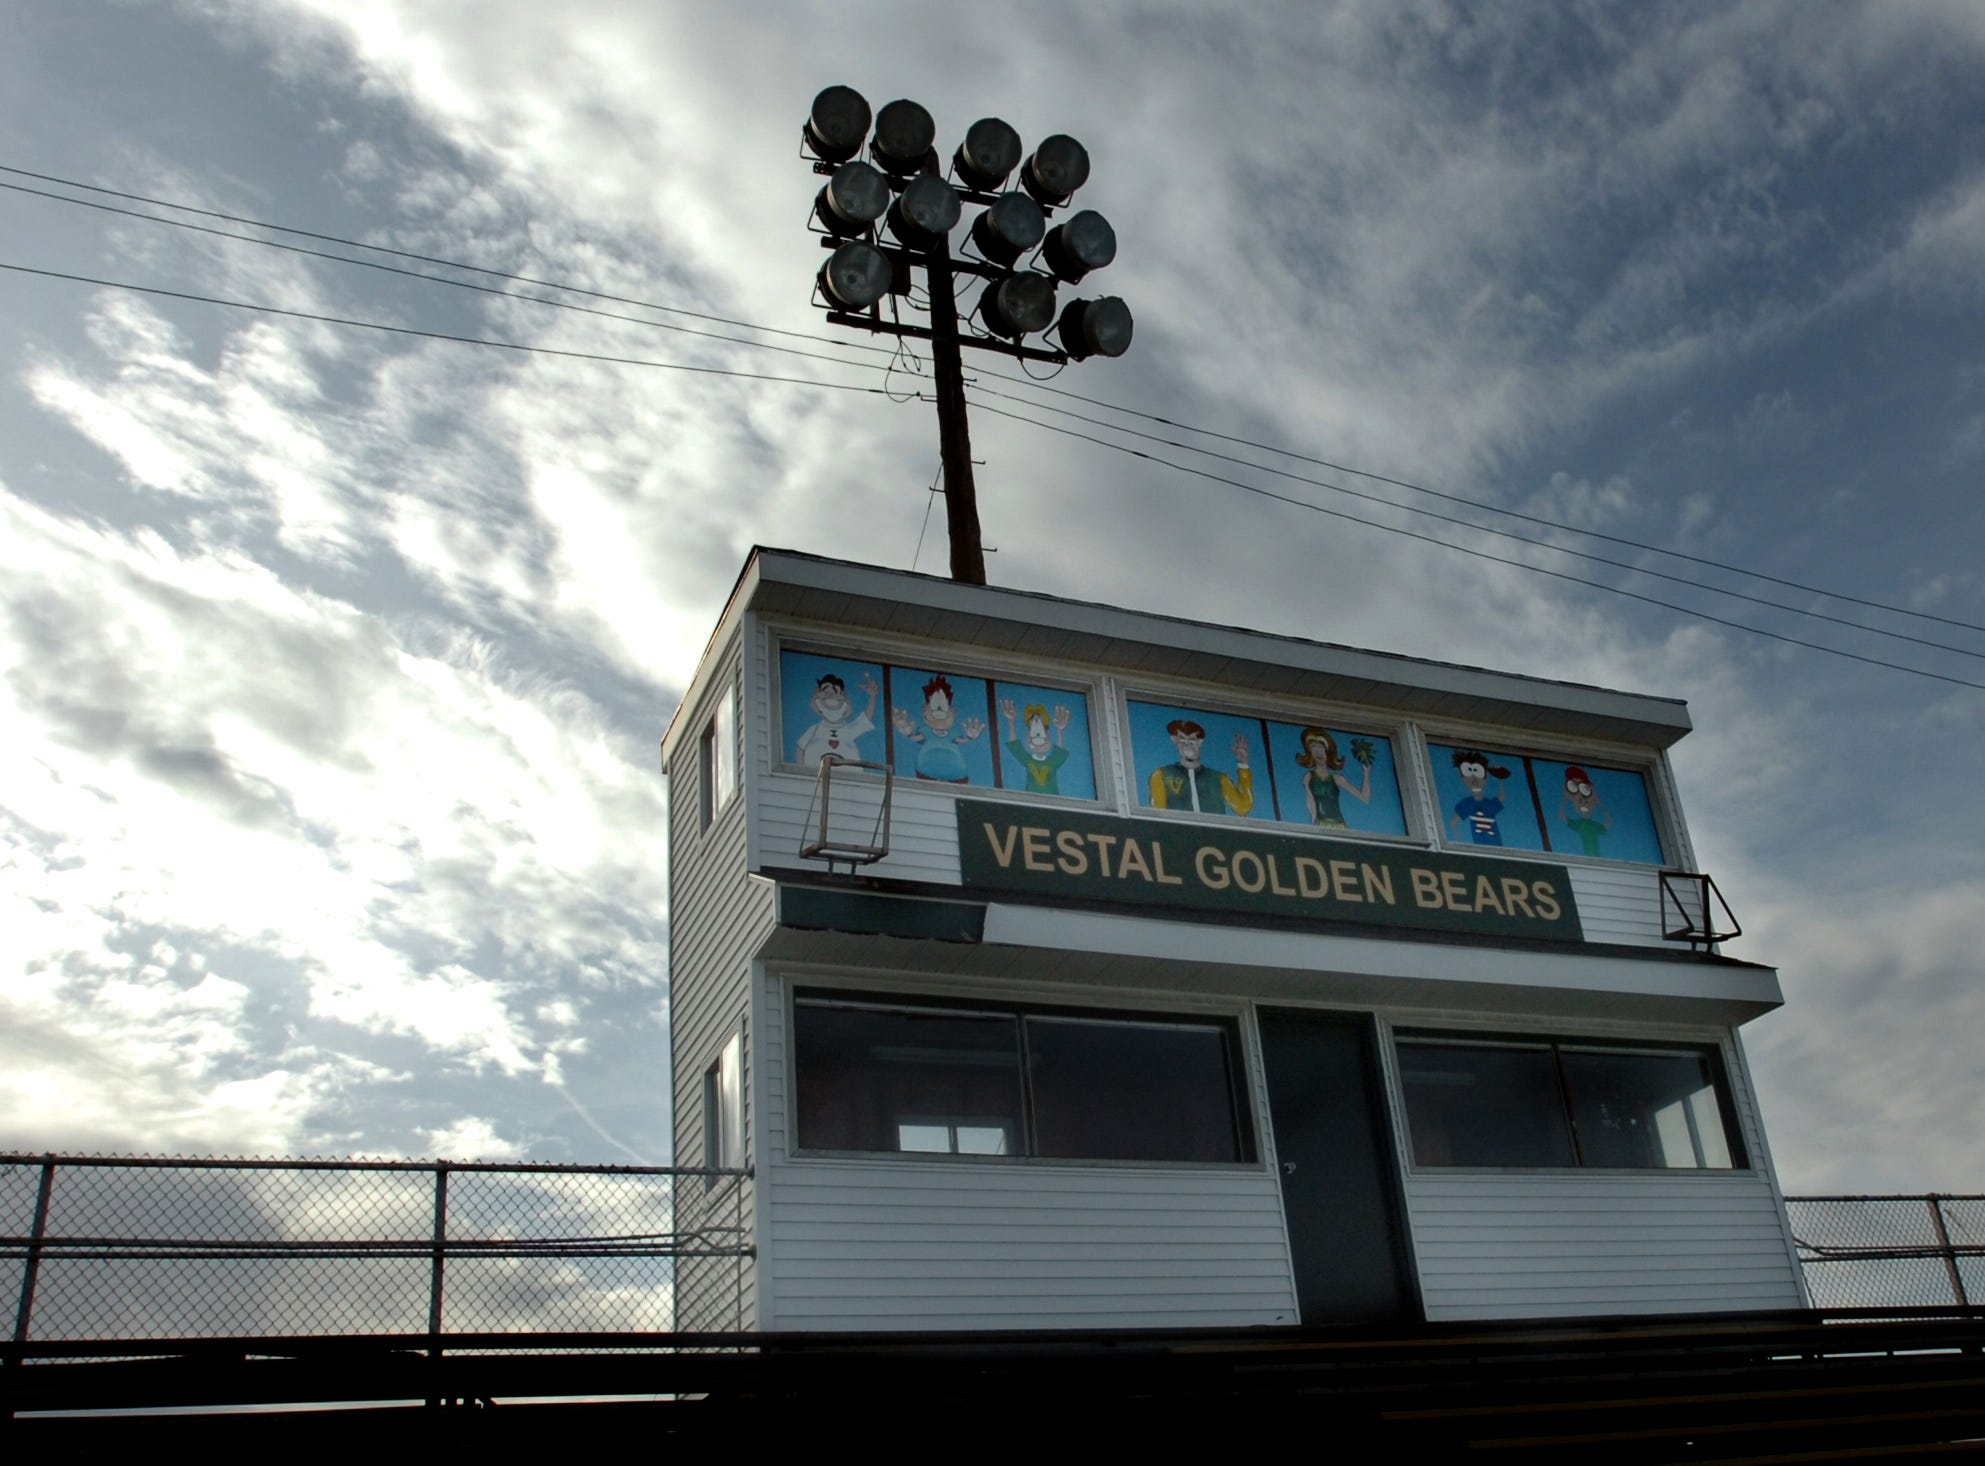 In 2006, upgrades at Vestal High School's Dick Hoover Stadium will force at least two home football games to be played at Union-Endicott in the fall.